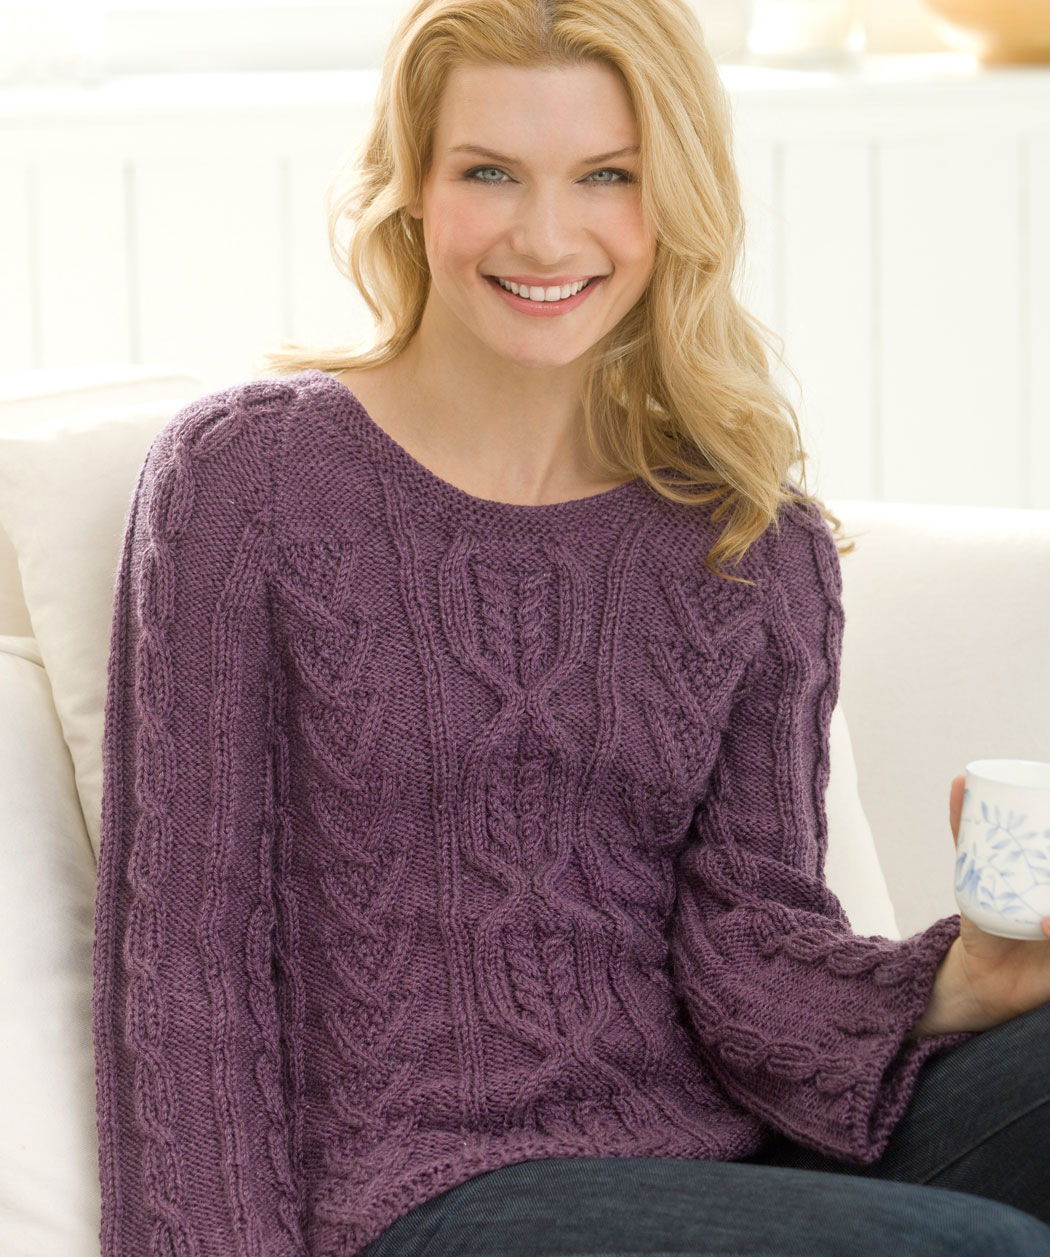 Sweater Knitting Patterns : Cable Knit Sweater Patterns A Knitting Blog